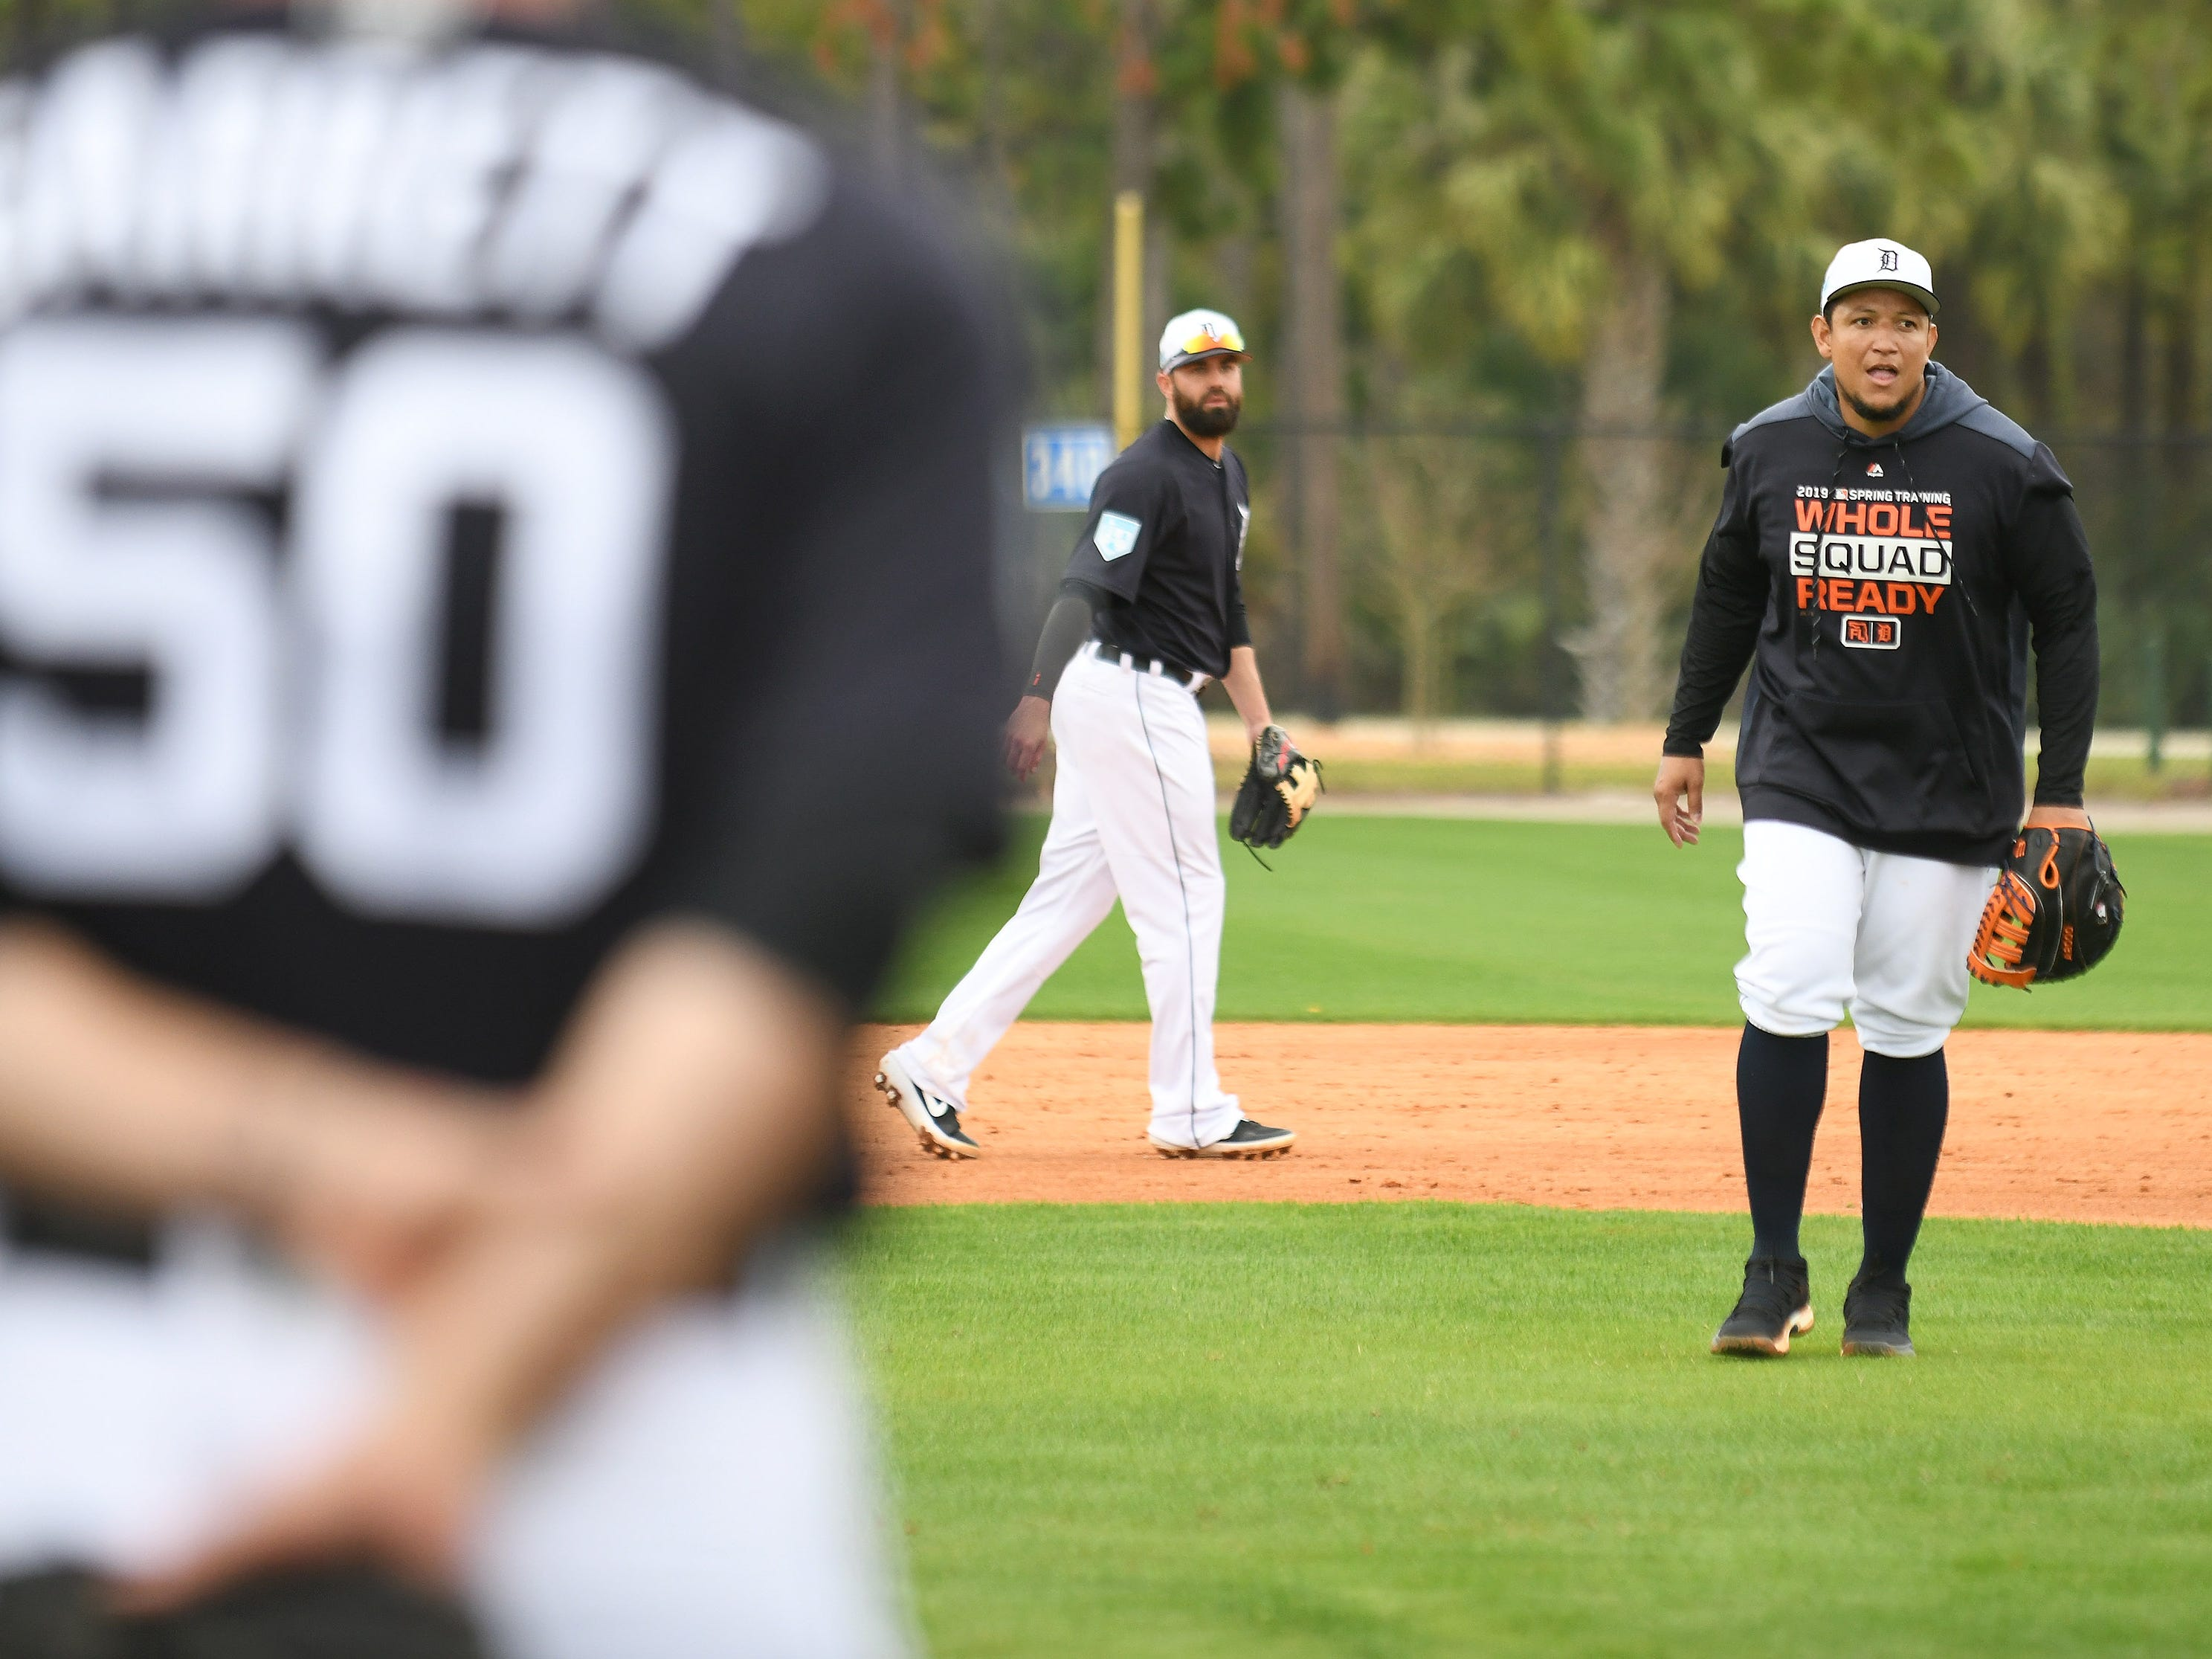 Tigers first baseman Miguel Cabrera gives some input during infield drills.